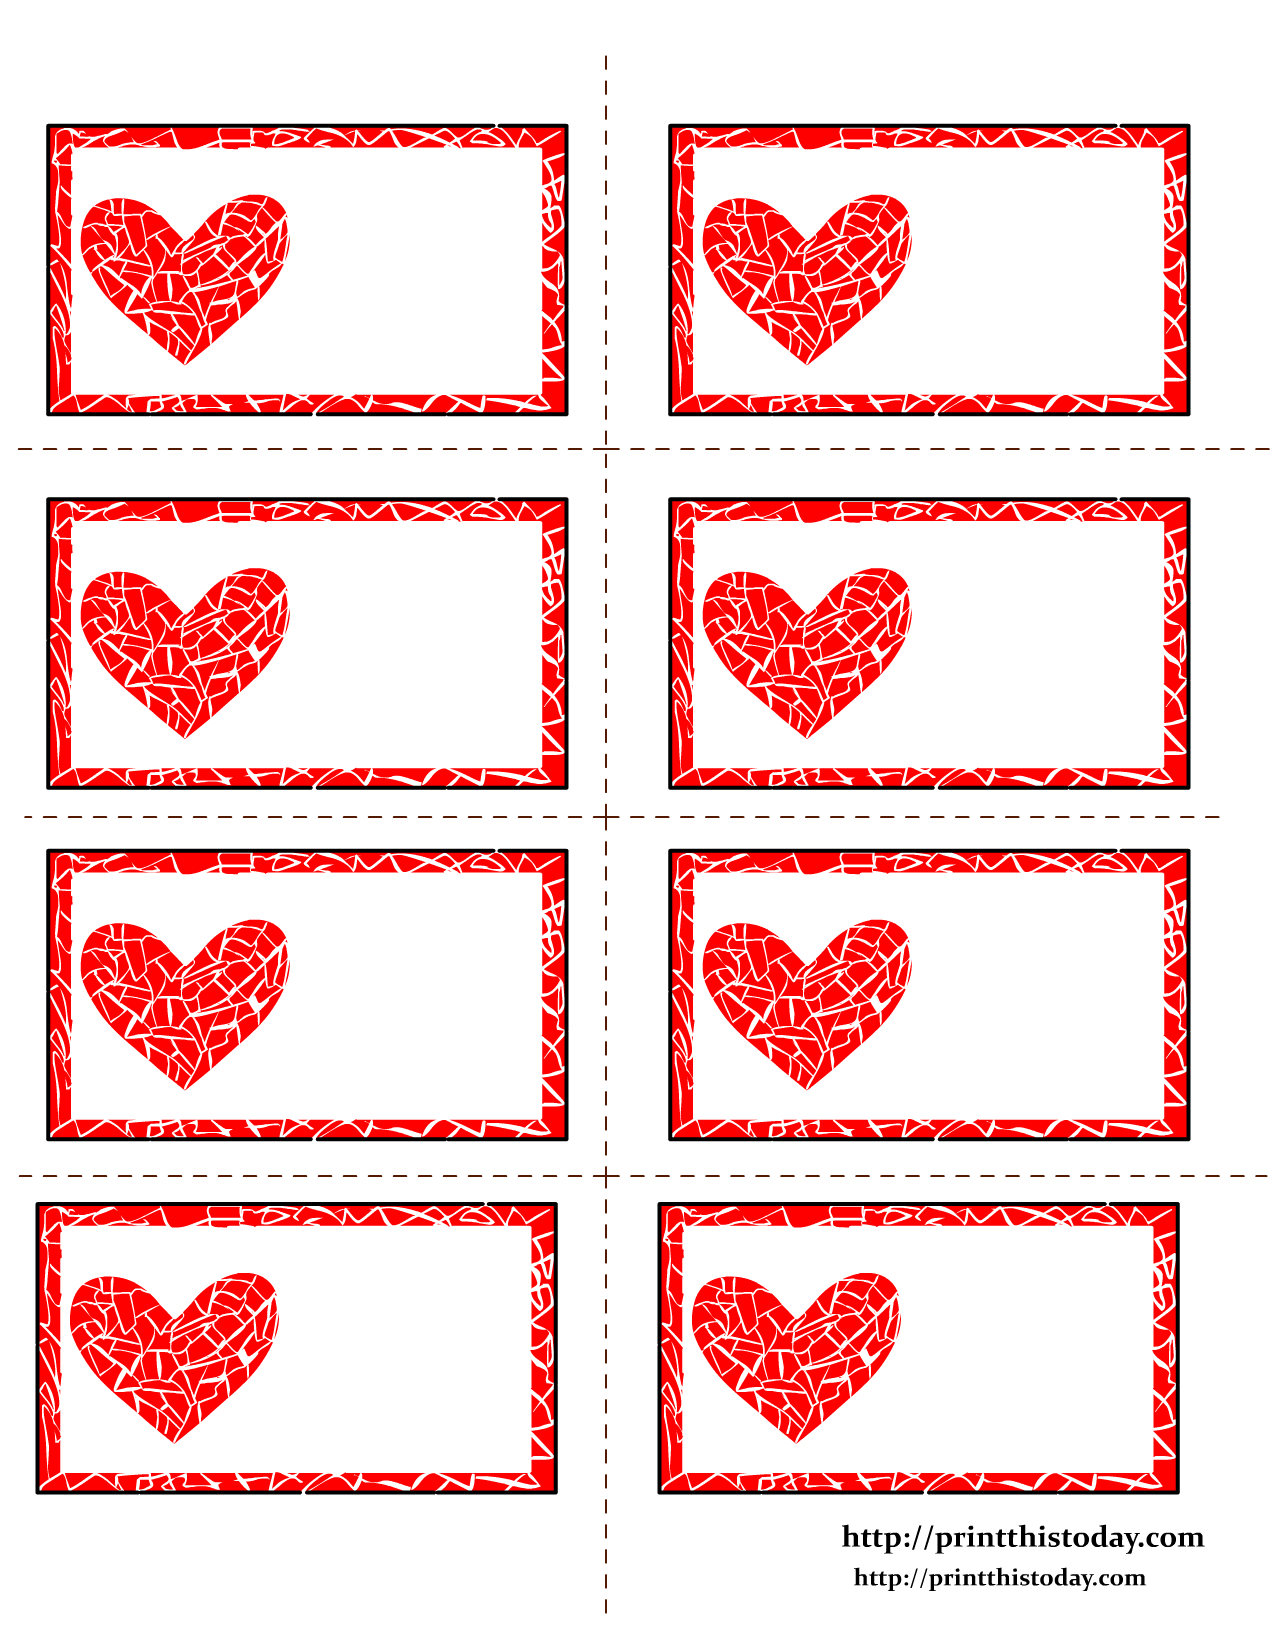 Free Printable Valentines Day Labelsann | Diyuradi Sam - Free Printable Heart Labels